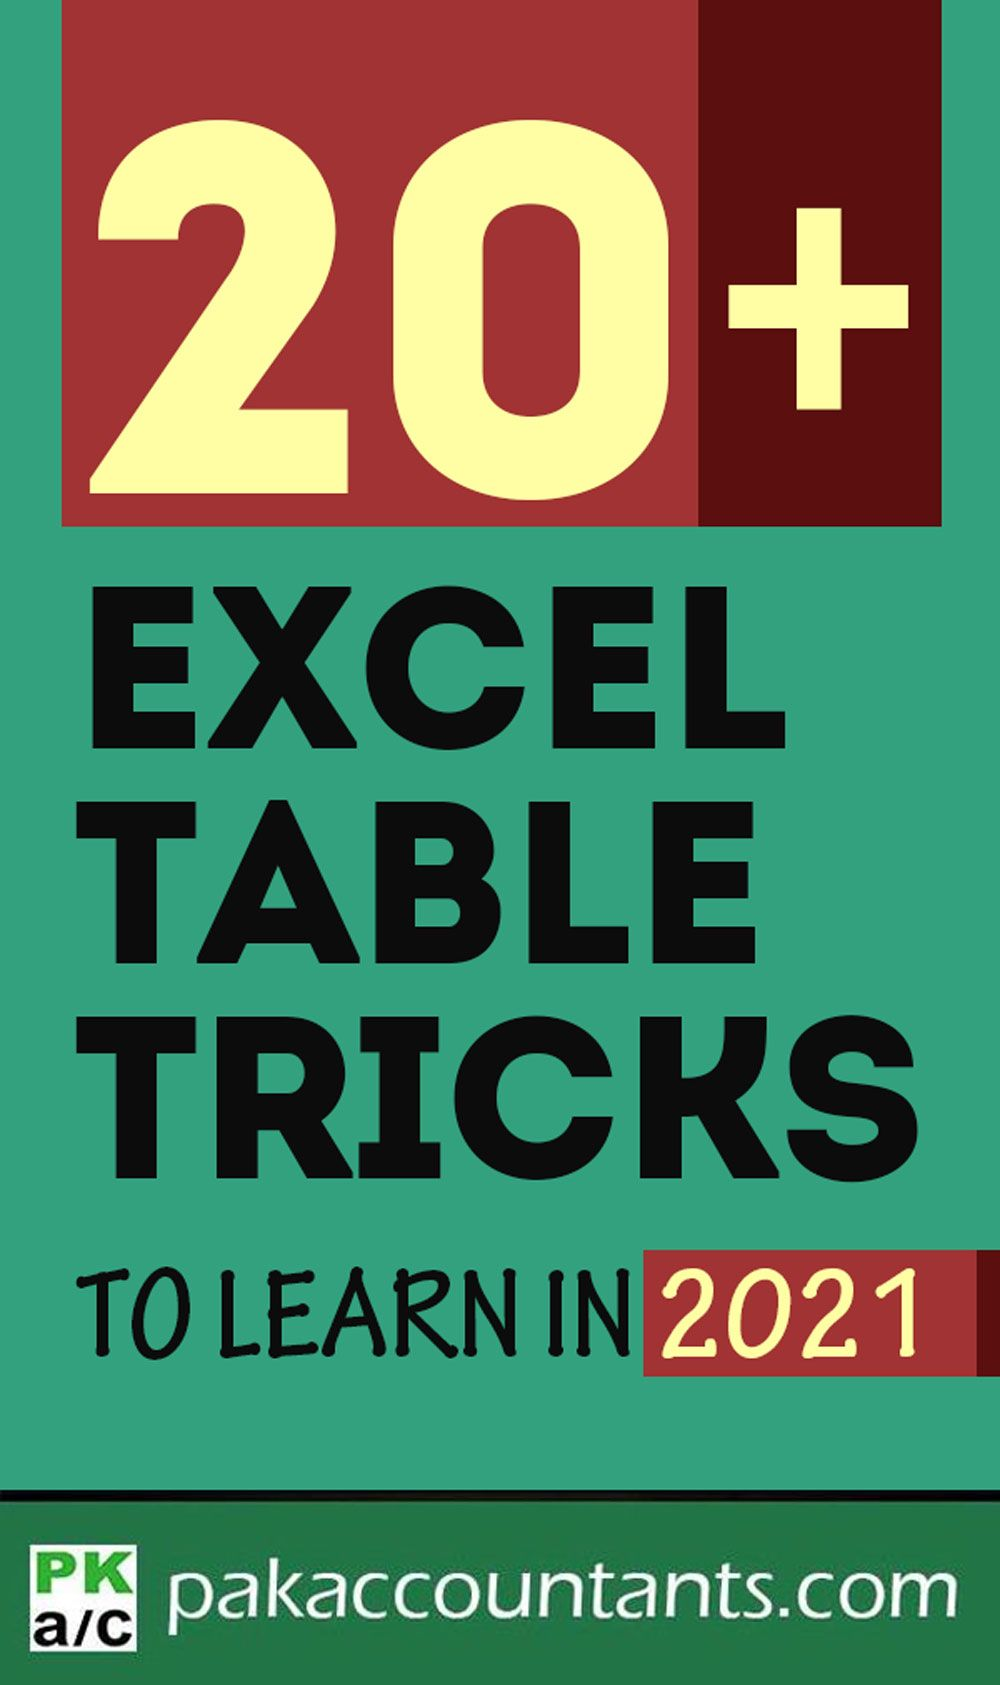 Excel in 2021: Learn Excel Tables with these trick